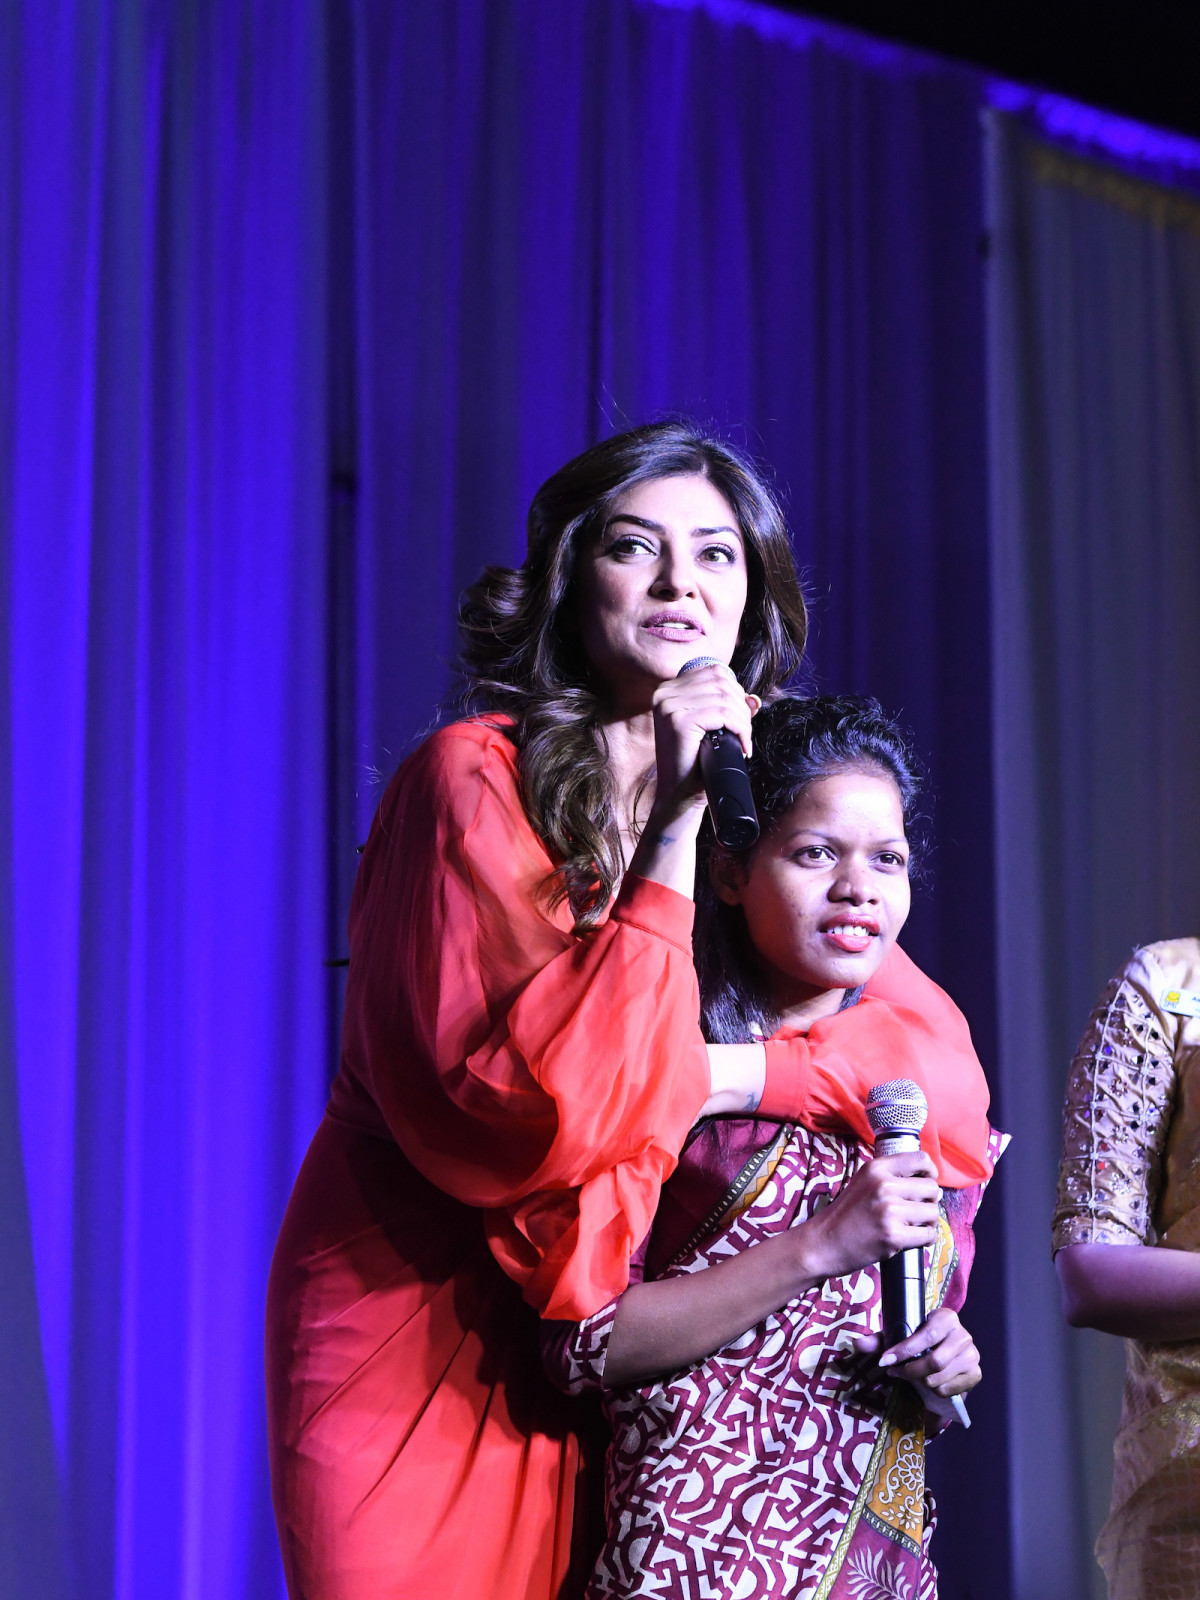 Pratham Gala, Sushmita Sen took over translating duties for Sanjana Das